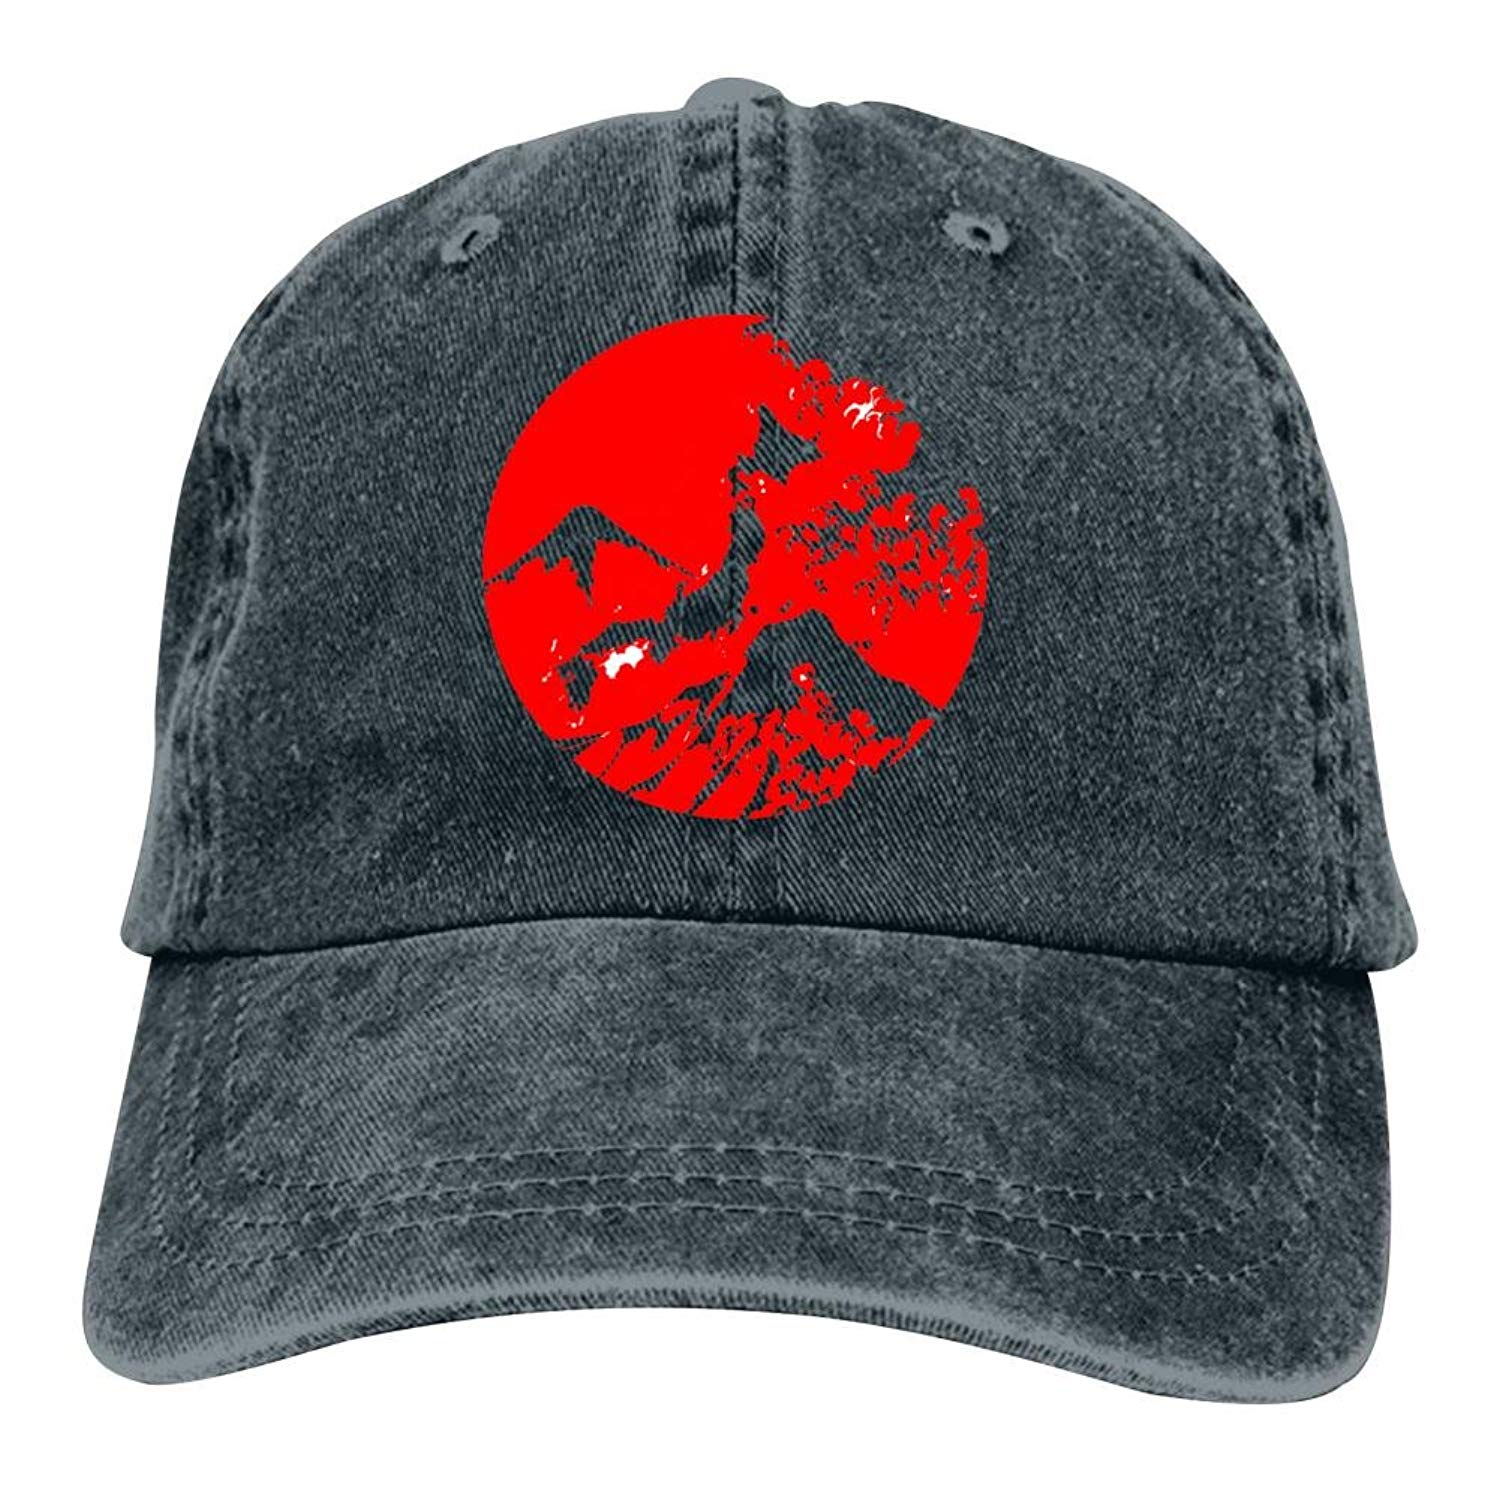 819e0a875f8c0 Ringkyo Flag Of Japan Japanese Flag Rising Sun Washed Dyed Cotton  Adjustable Cowboy Baseball Hat